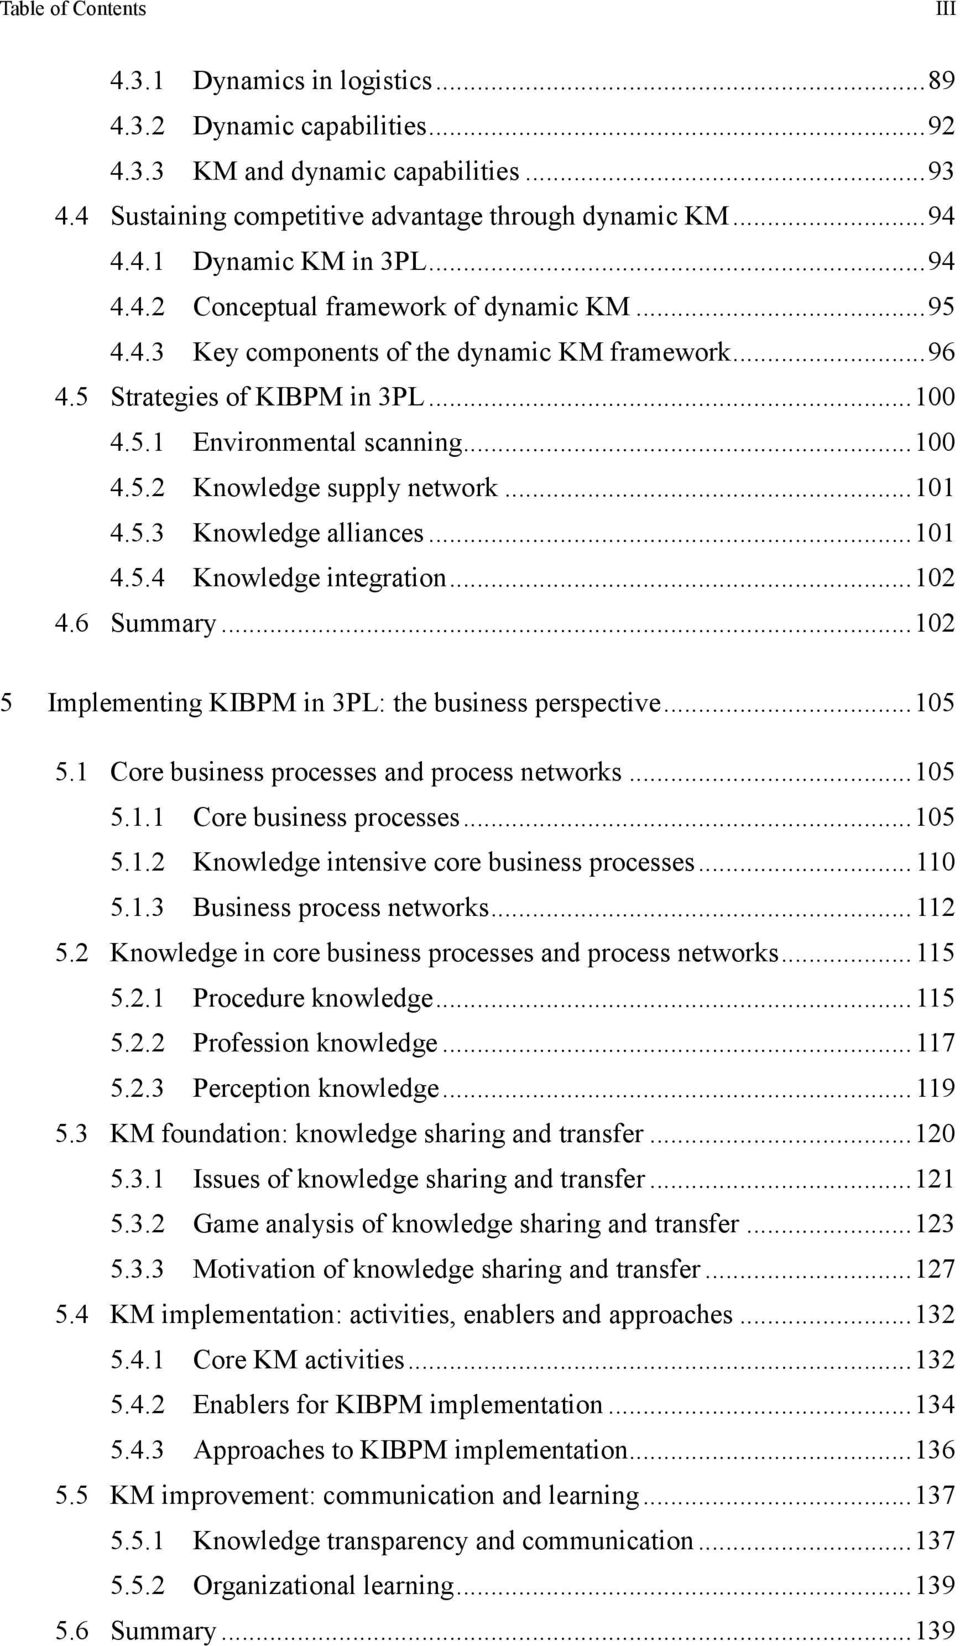 .. 101 4.5.3 Knowledge alliances... 101 4.5.4 Knowledge integration... 102 4.6 Summary... 102 5 Implementing KIBPM in 3PL: the business perspective... 105 5.